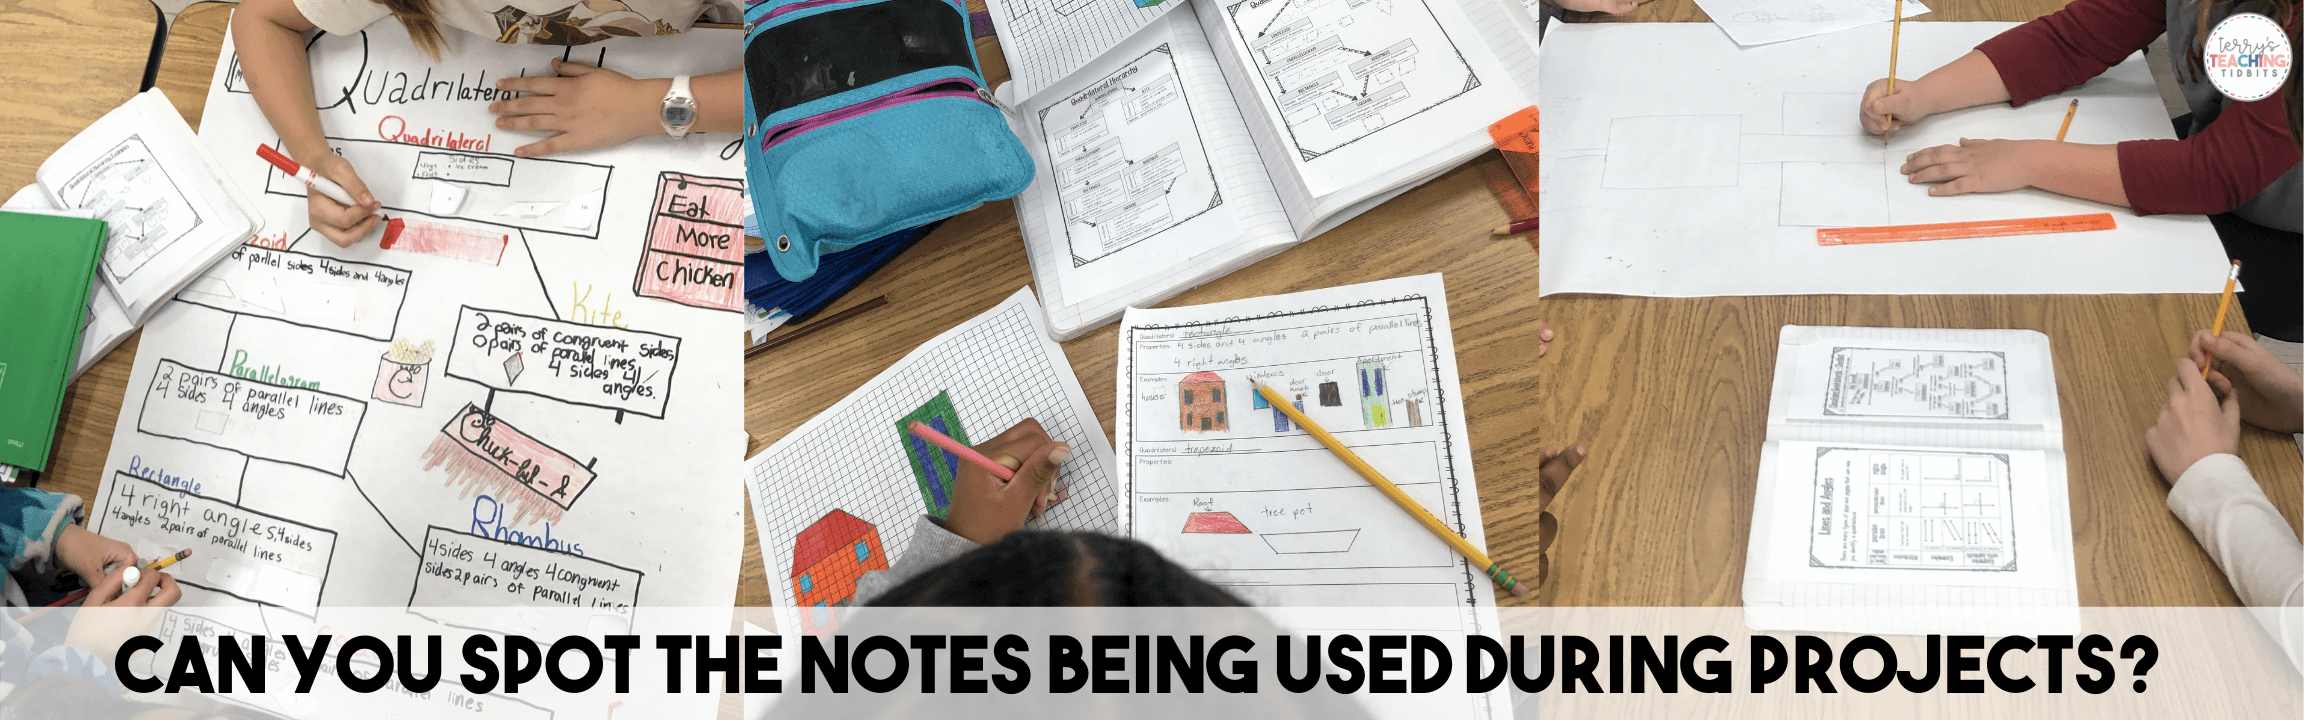 Students Notes while Working on Projects